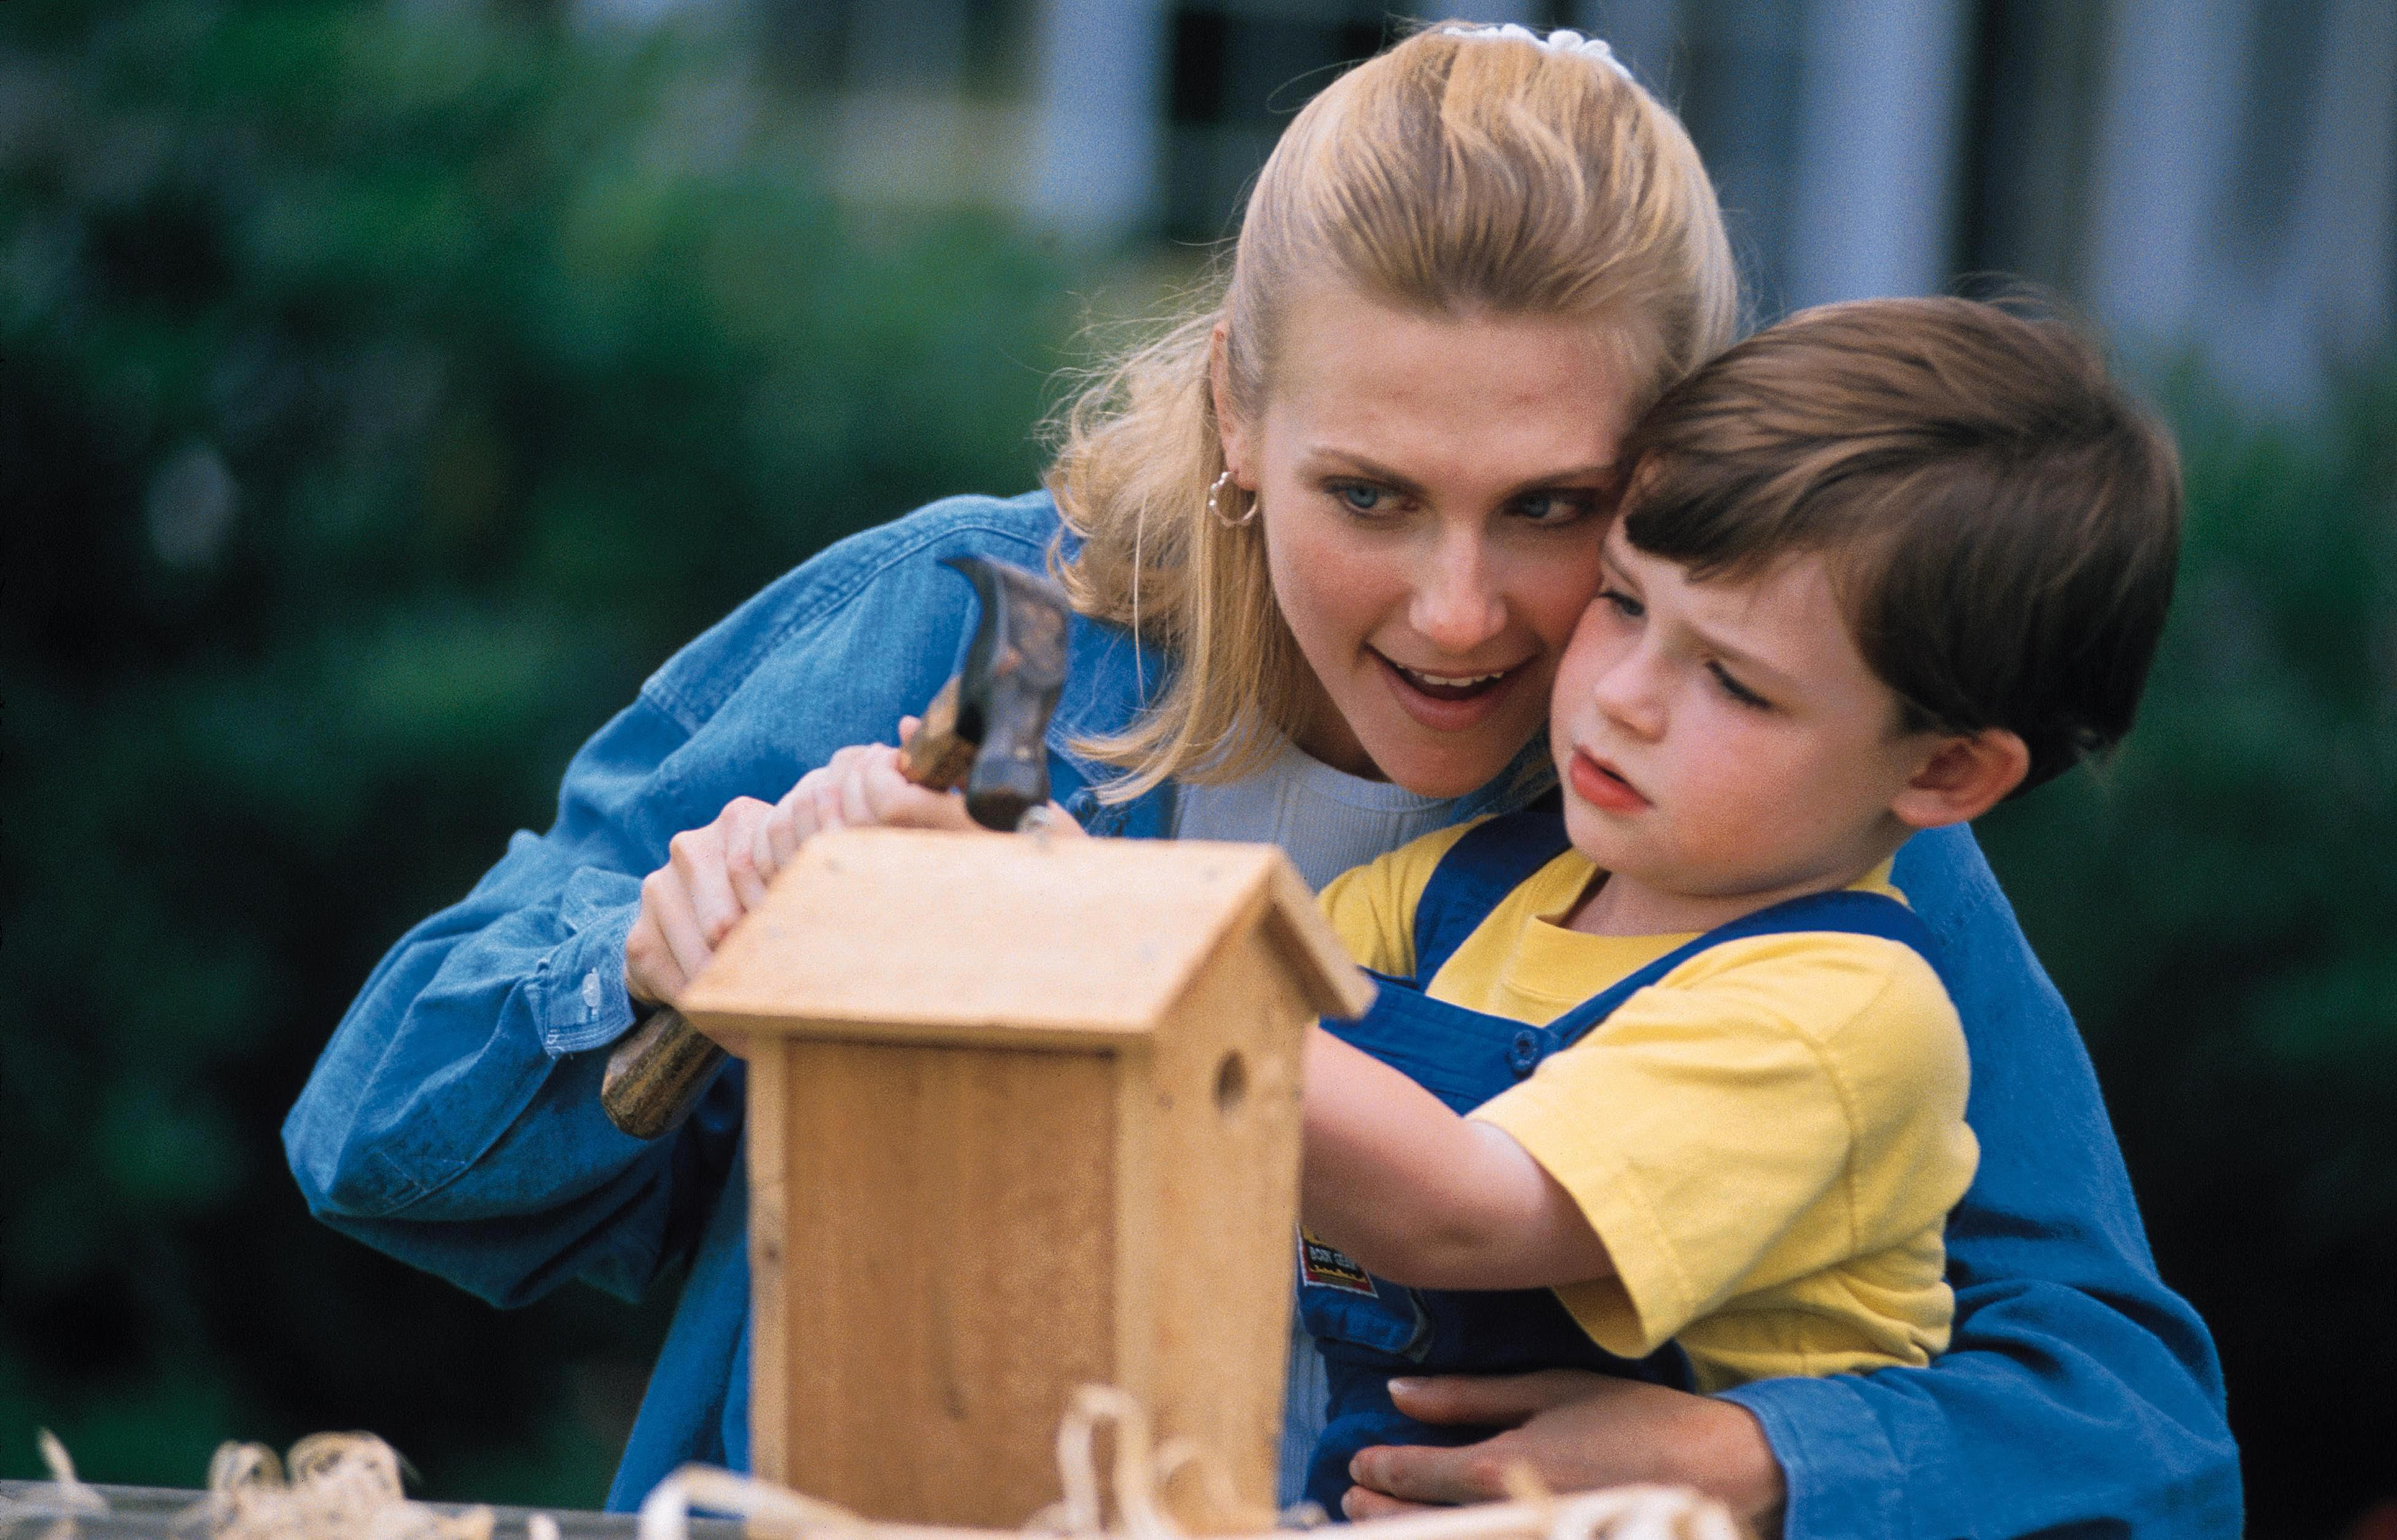 How To Request Back Child Support Payments